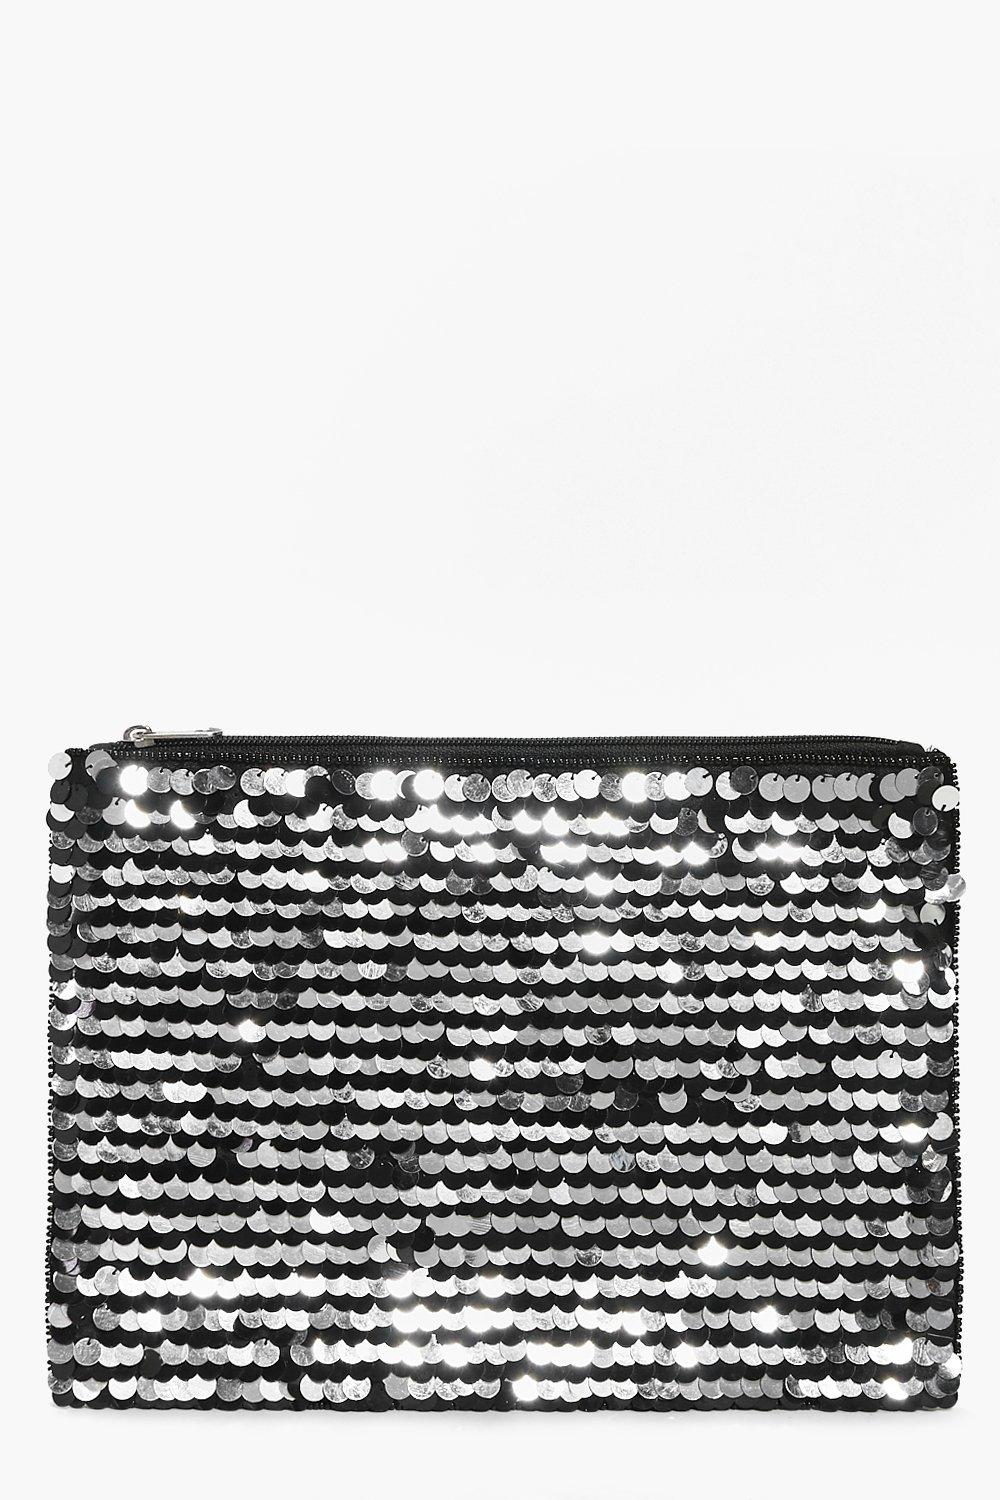 Tia Oversized Sequin Clutch Bag